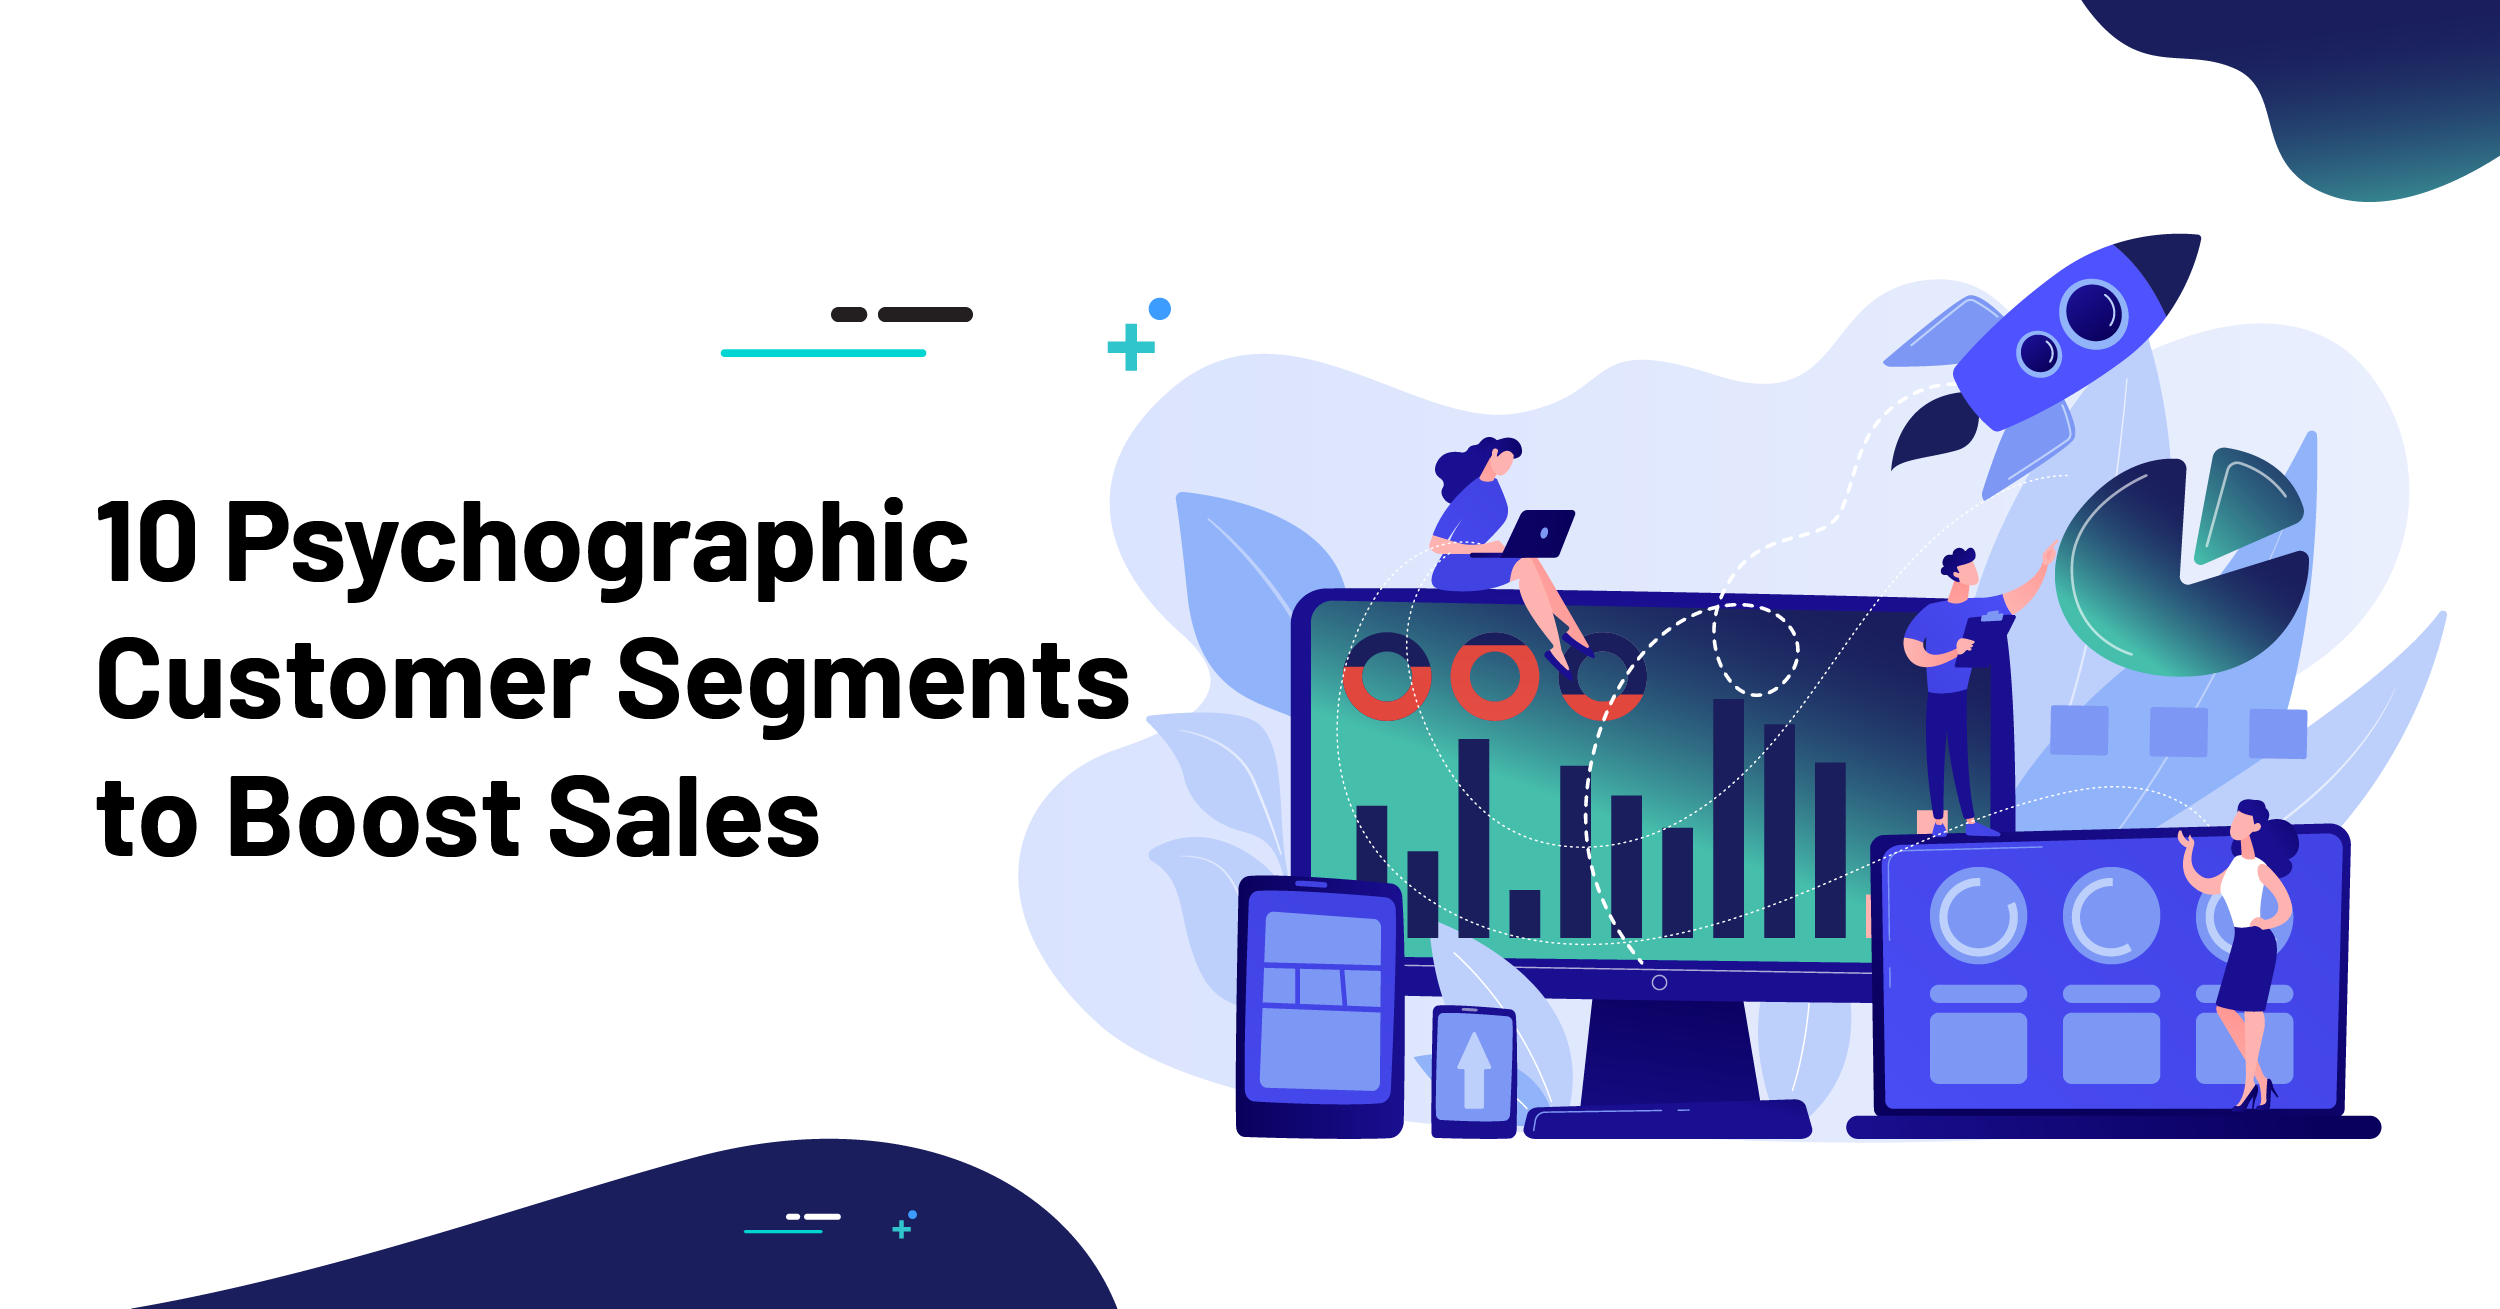 10 Psychographic Customer Segments to Boost Sales